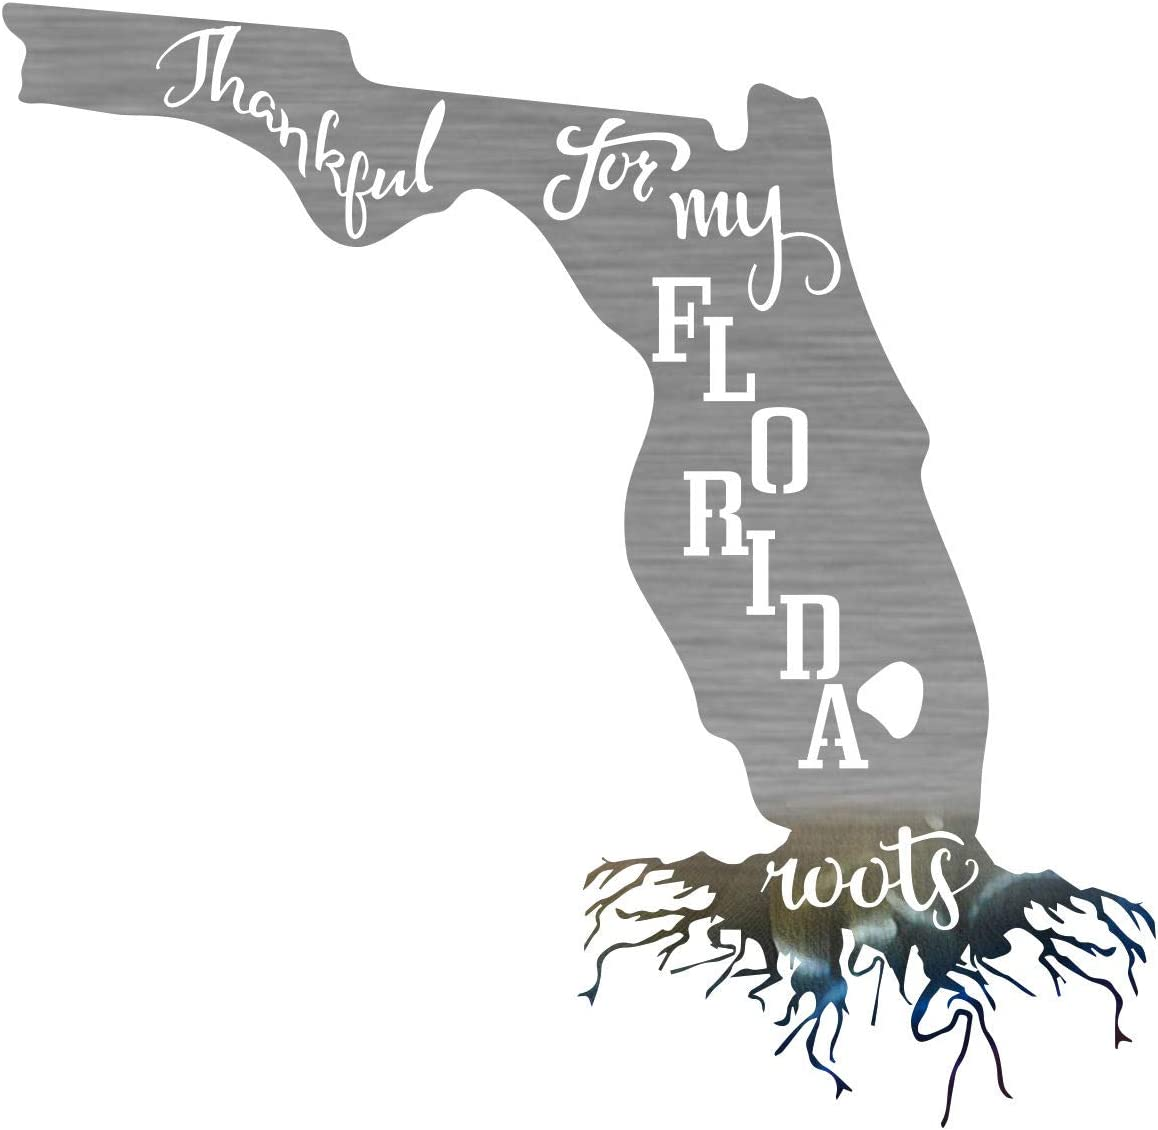 Florida Roots Outdoor Steel Max 69% OFF Laser Cut Natura Art in Shiny Wall a Free shipping on posting reviews